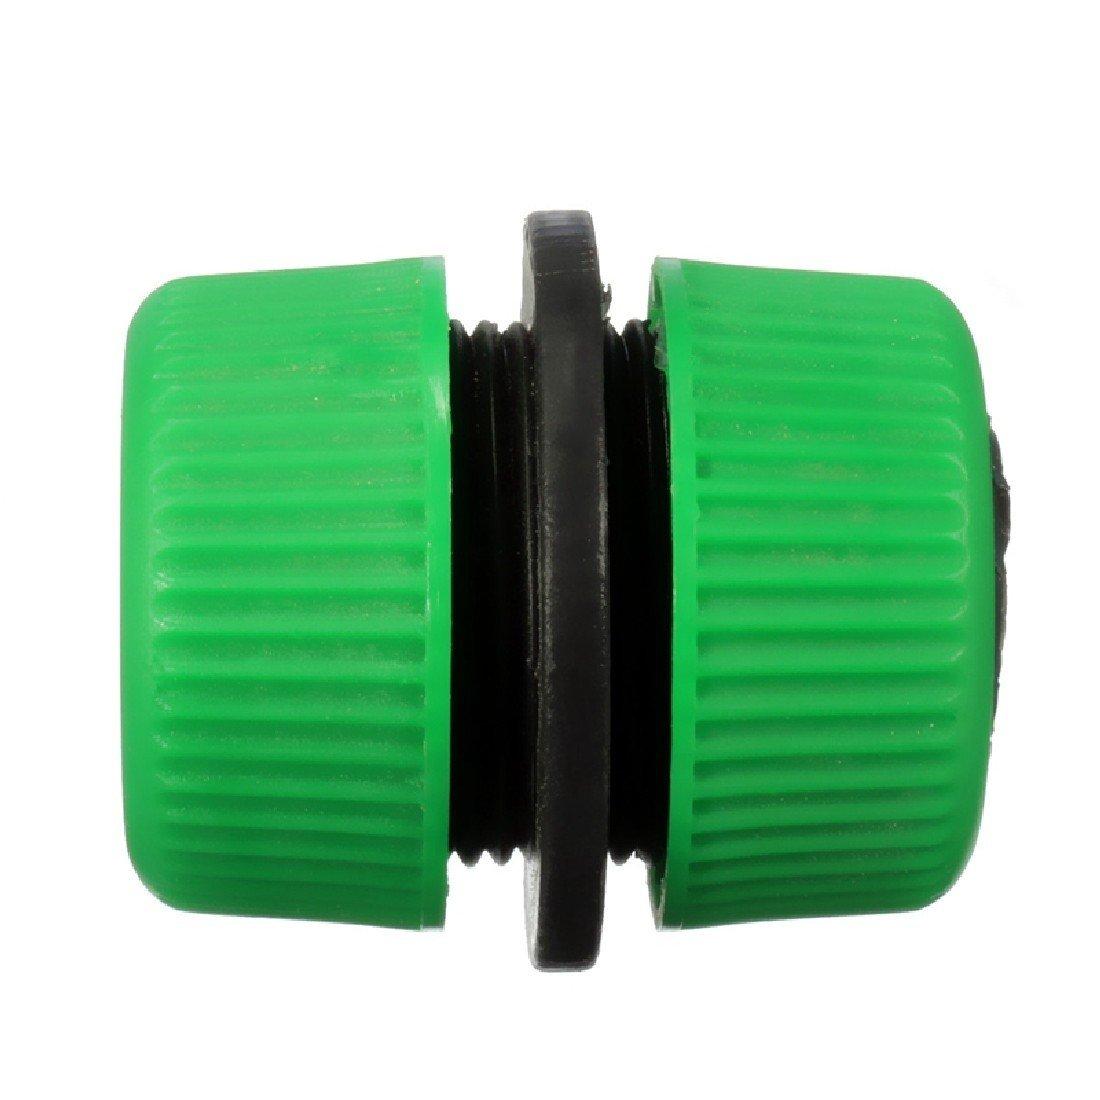 Garden Water Hose Connector Pipe Quick Connectors Joining Mender Repair Kit